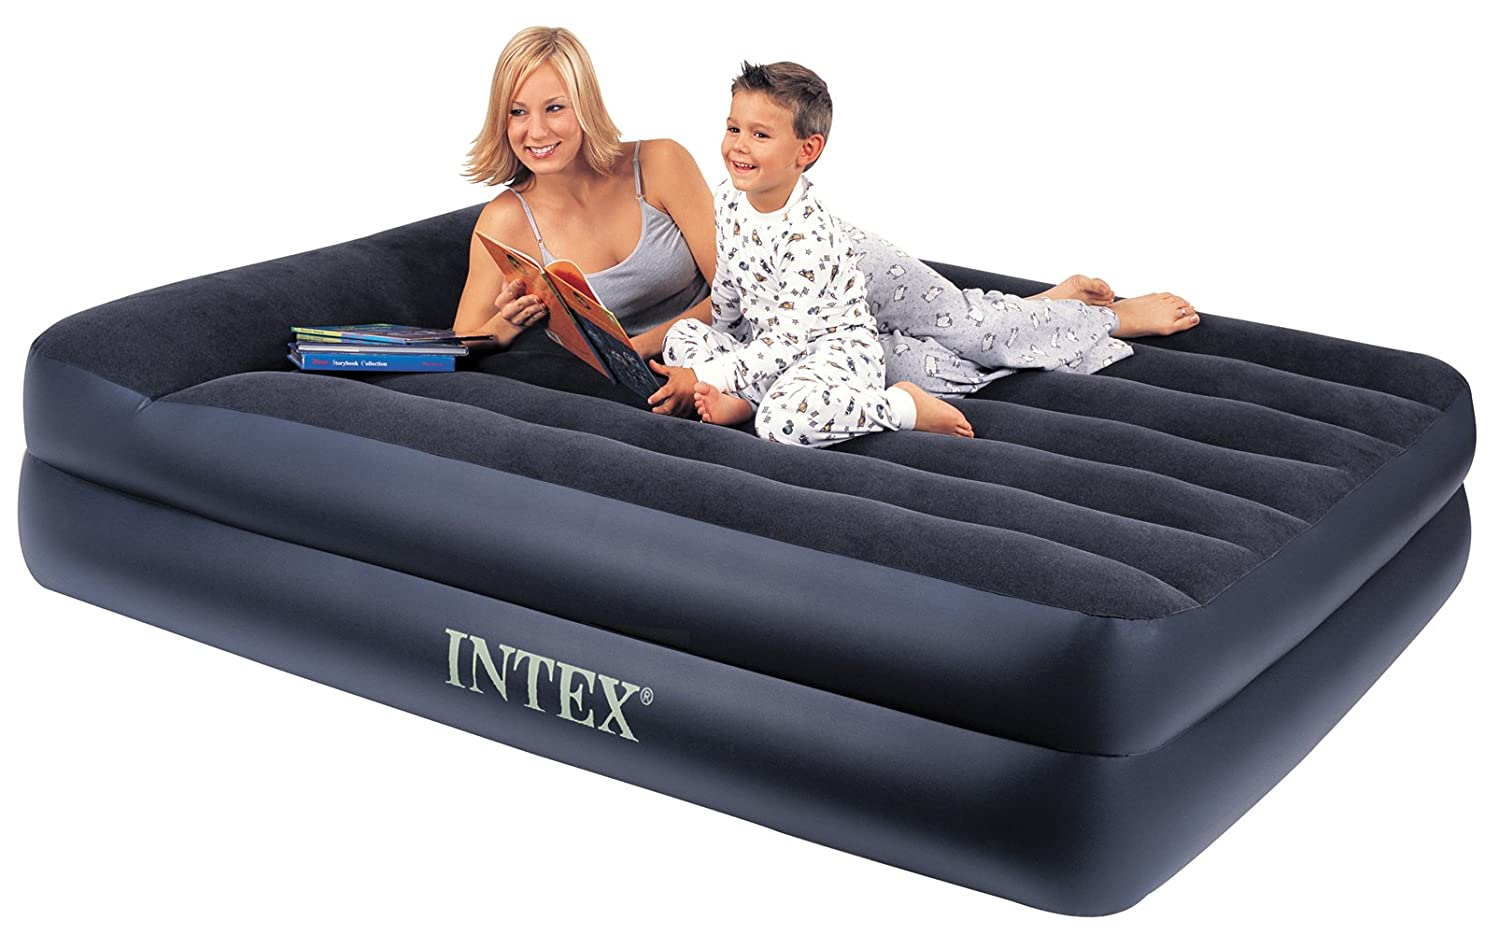 Intex Luftbett Comfort